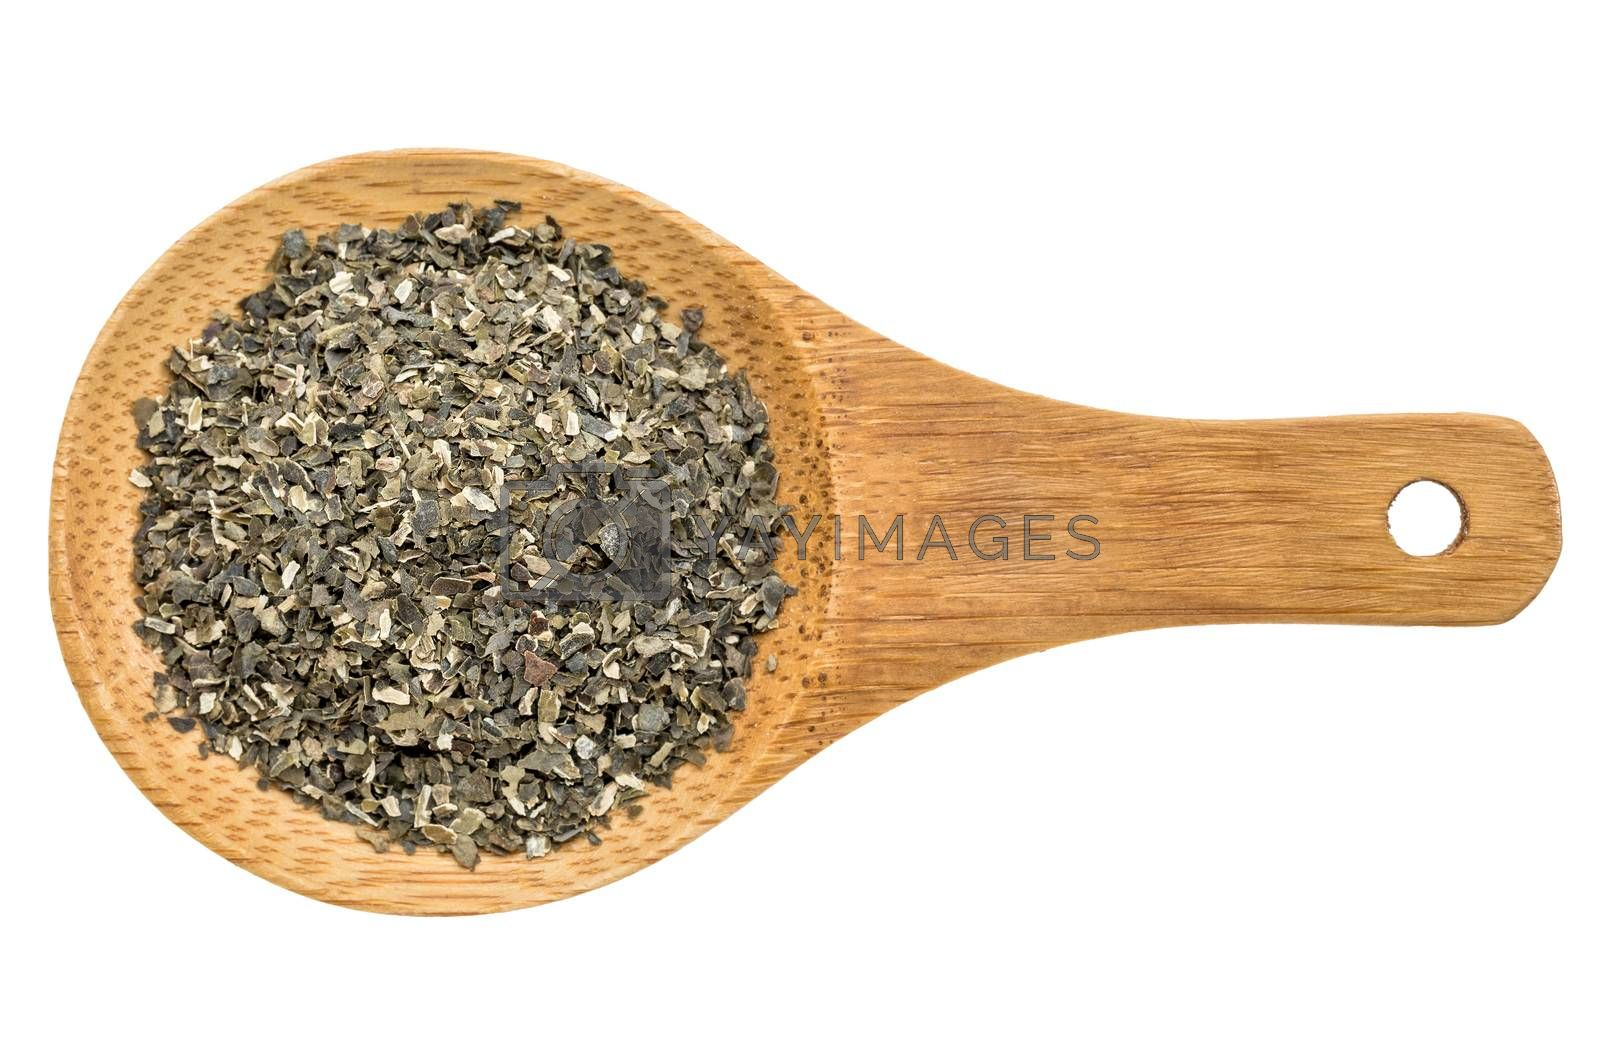 dried wakame seaweed - top view of a wooden spoon isolated on white